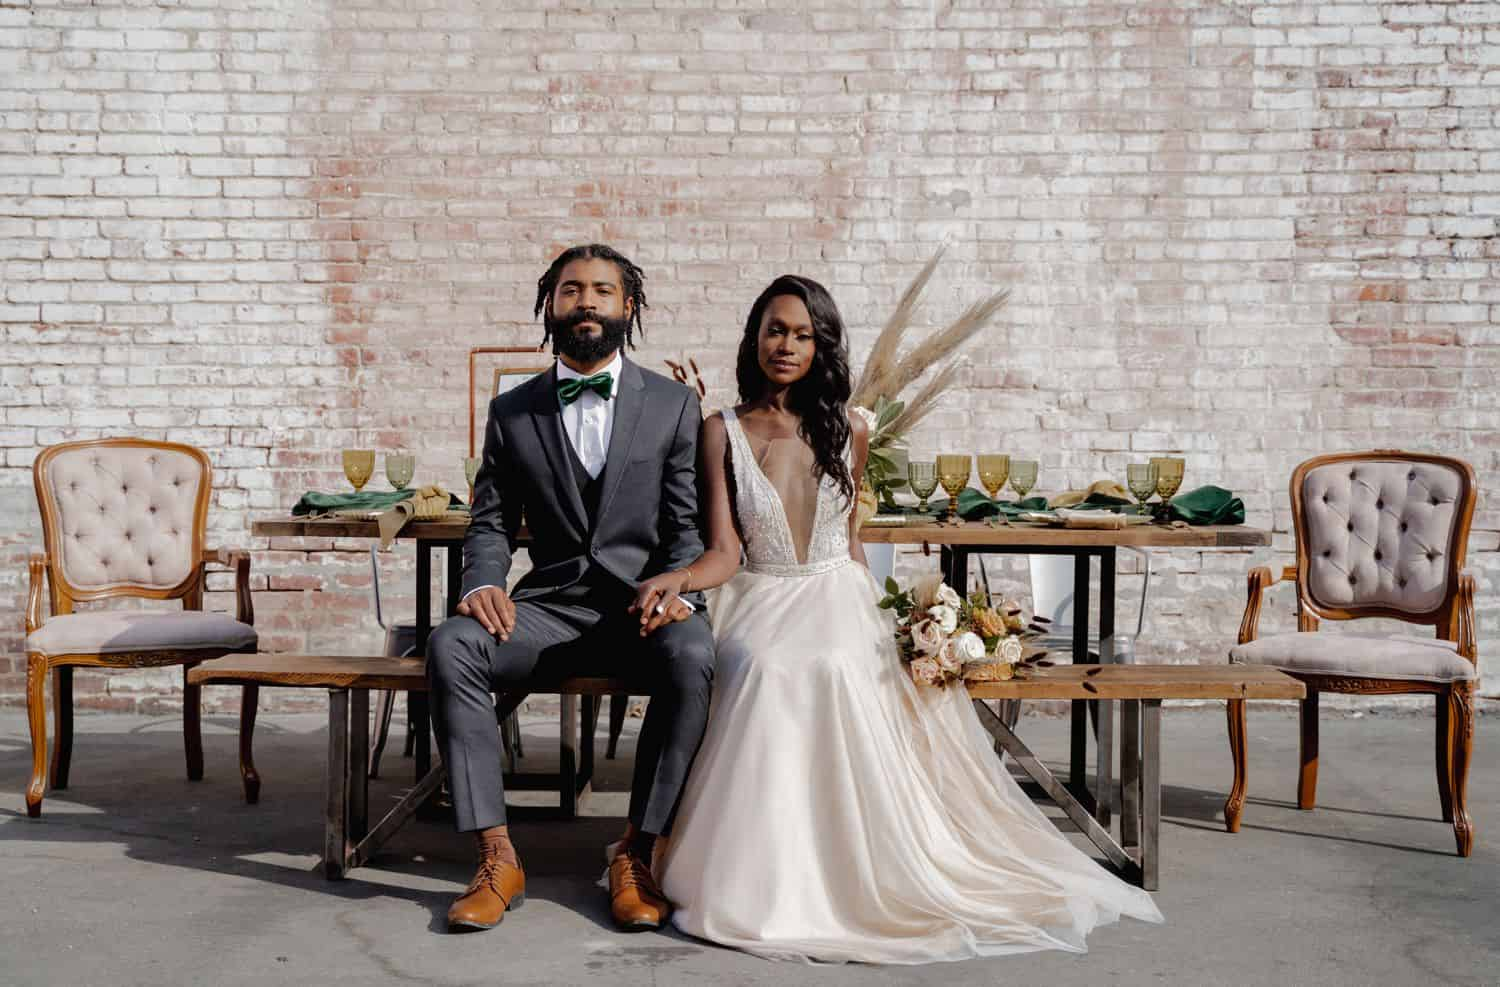 A Black bride and groom sit on a decorated picnic table wearing a gray tuxedo and an ivory wedding gown in front of a brick wall.